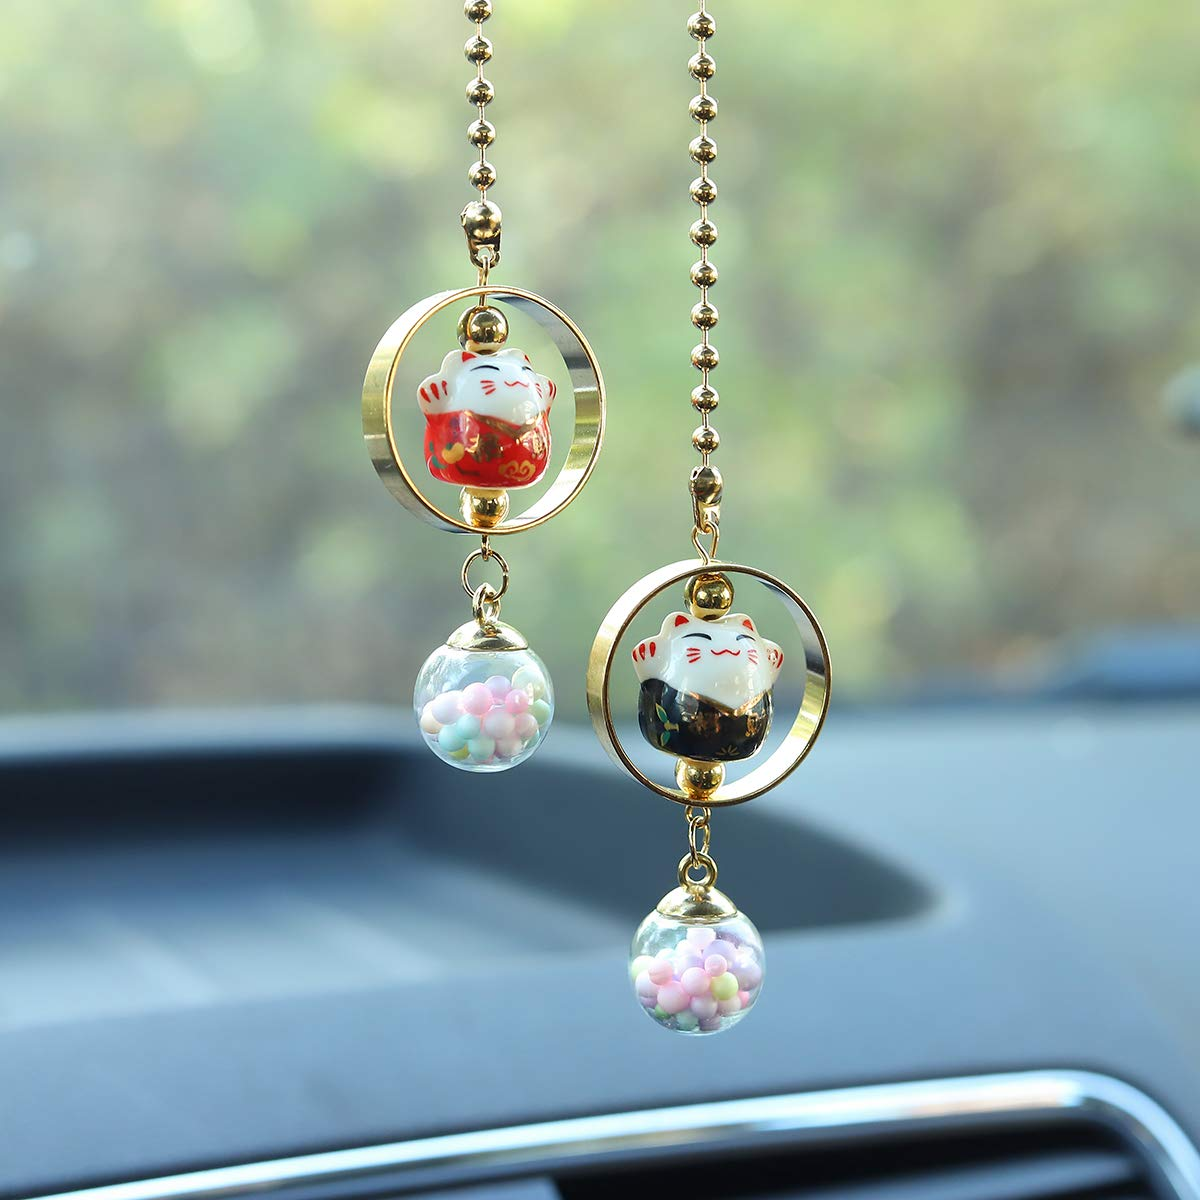 Purple /& Yellow EYEZU Bling Car Pendant Lucky Cat Car Charms for Rear View Mirror Chinese Ceramic Car Charm Ornaments Cute Cat Car or Home Decorations Car Interior Accessories